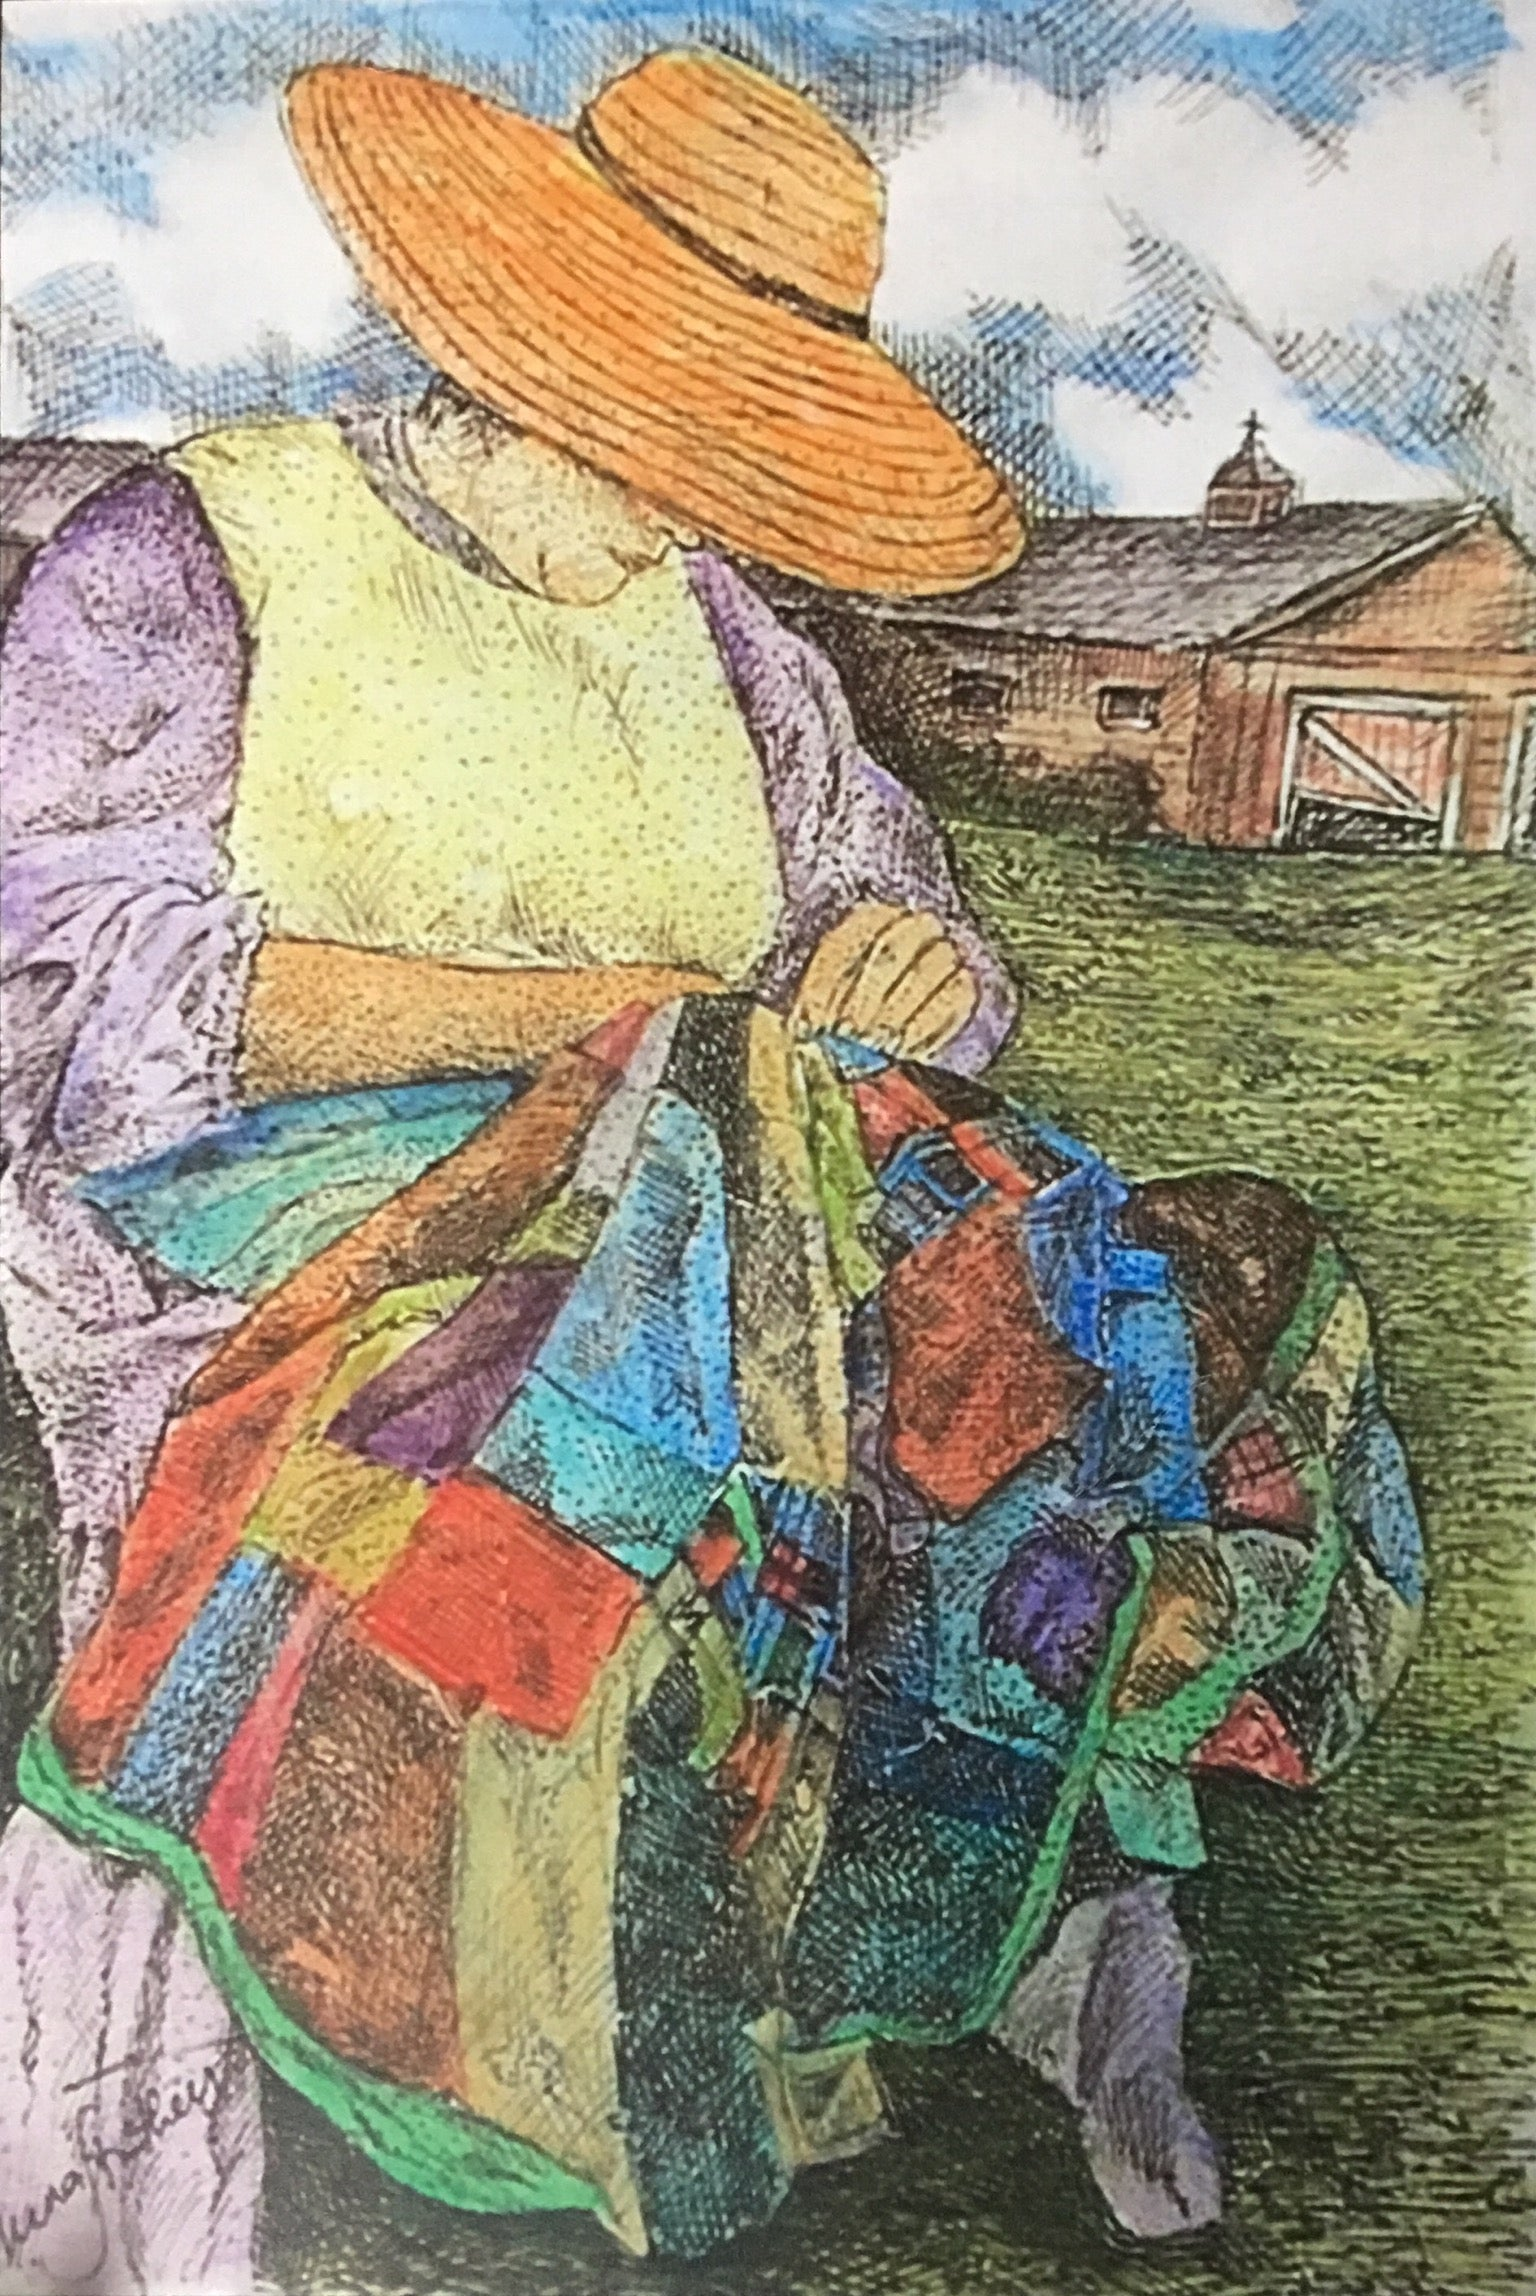 People Print - The Quilter # 270